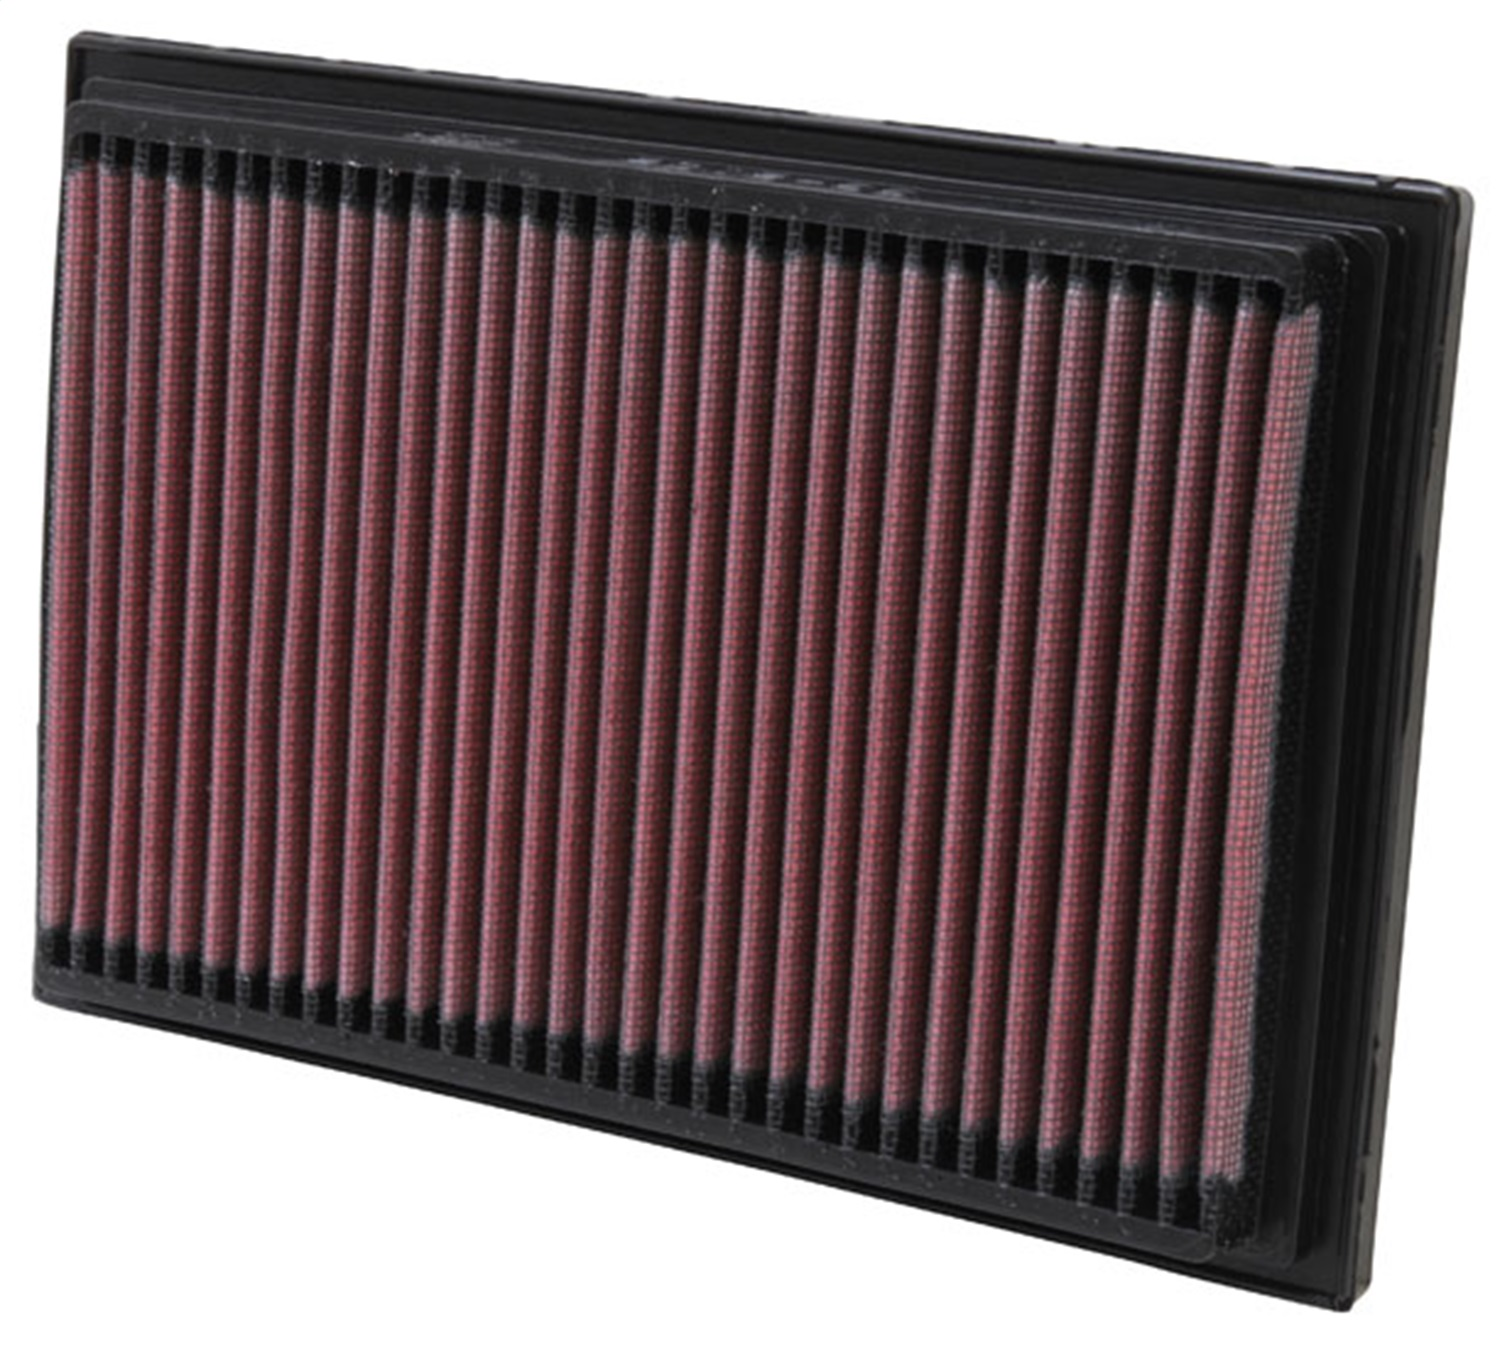 K&N Filters 33-2182 Air Filter Fits 00-05 Accent 33-2182